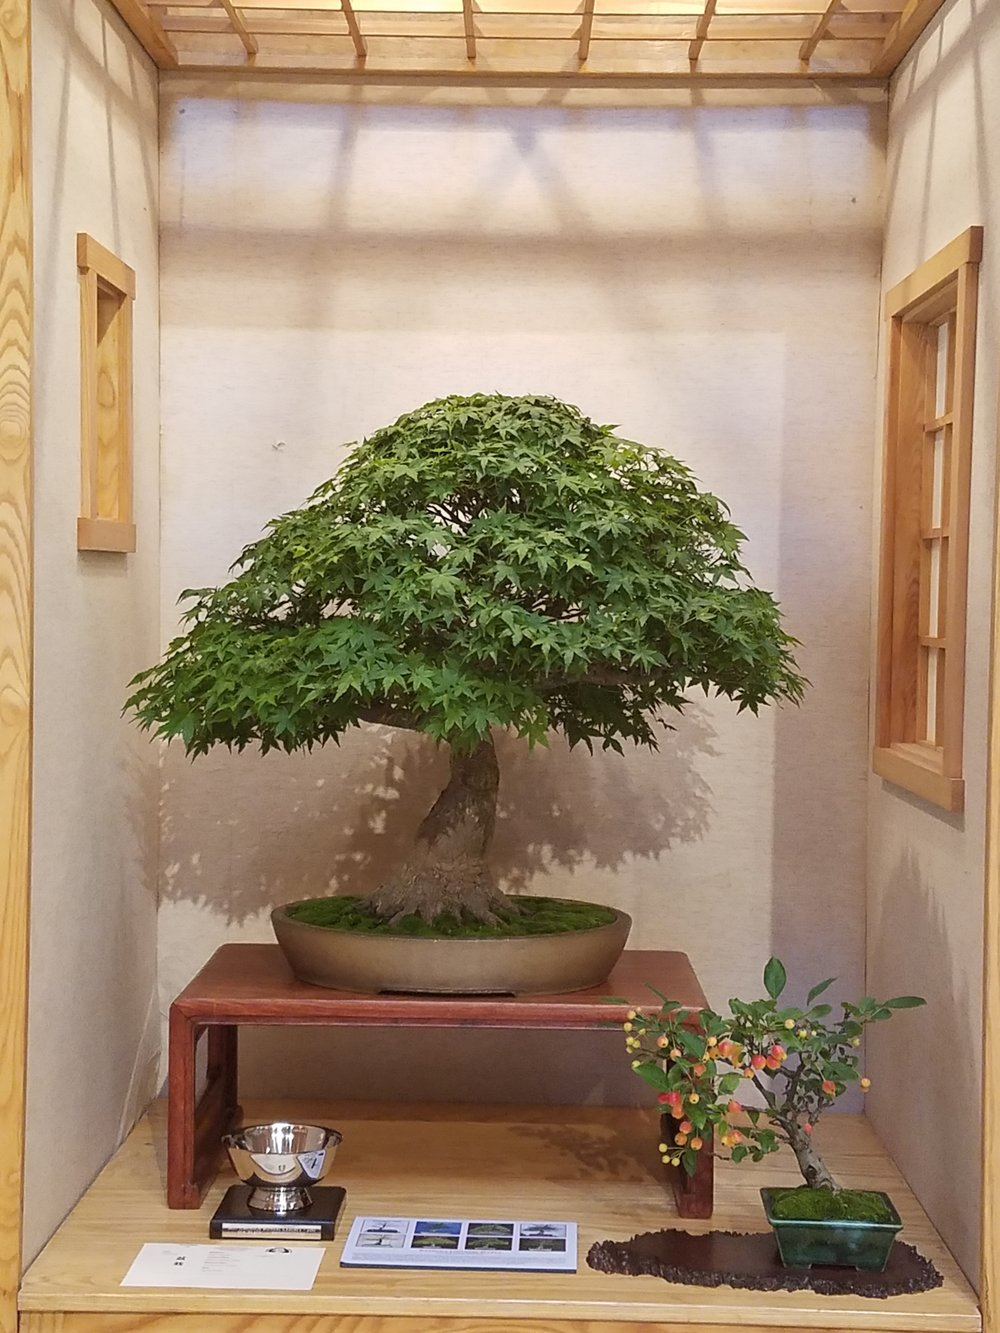 2017 Mid-America Bonsai Exhibition - Kashima Japanese Maple - Informal Upright